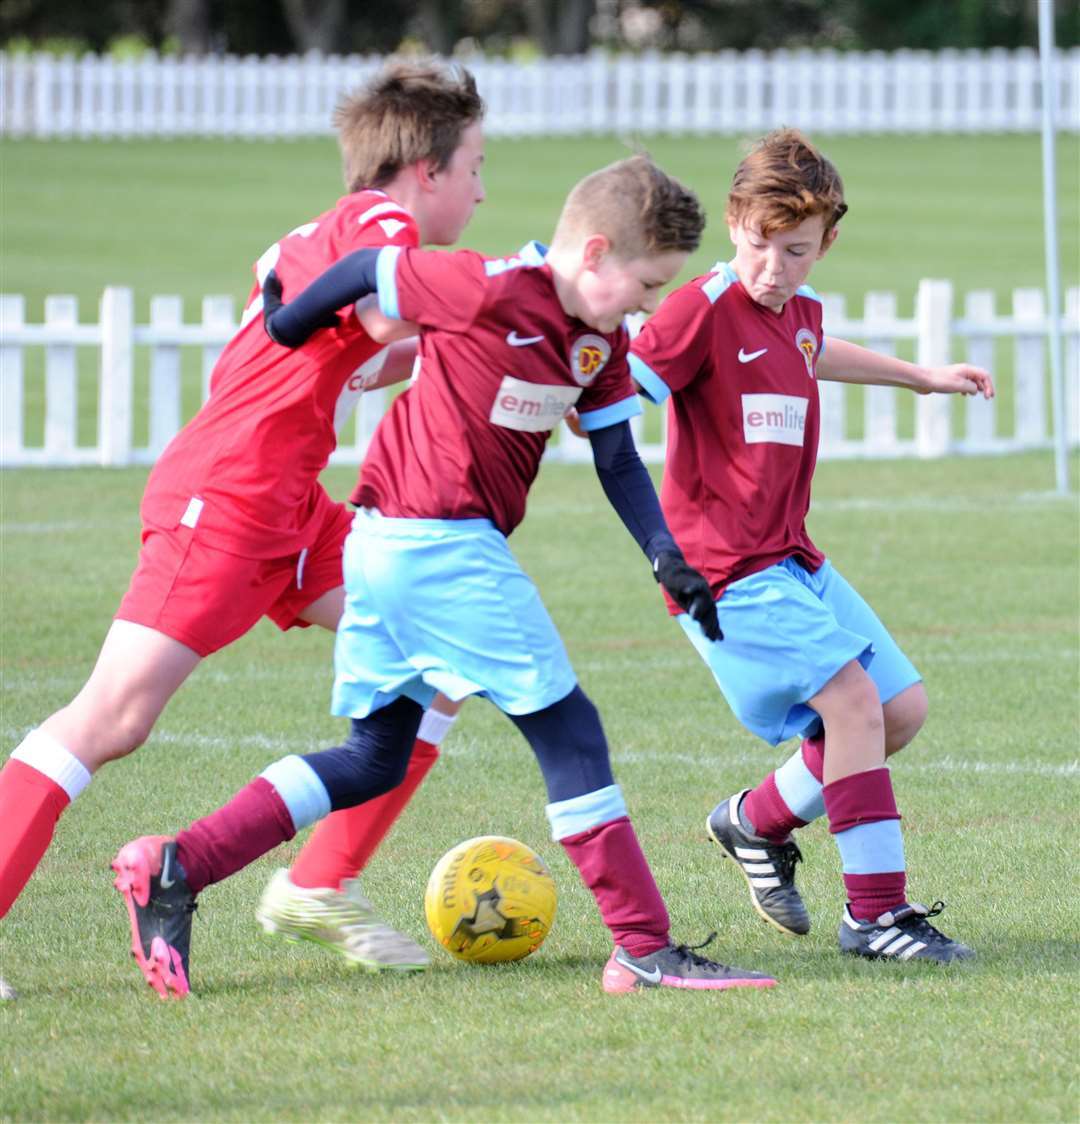 Deeping Rangers Under 12s v Stamford. Photo: Chris Lowndes